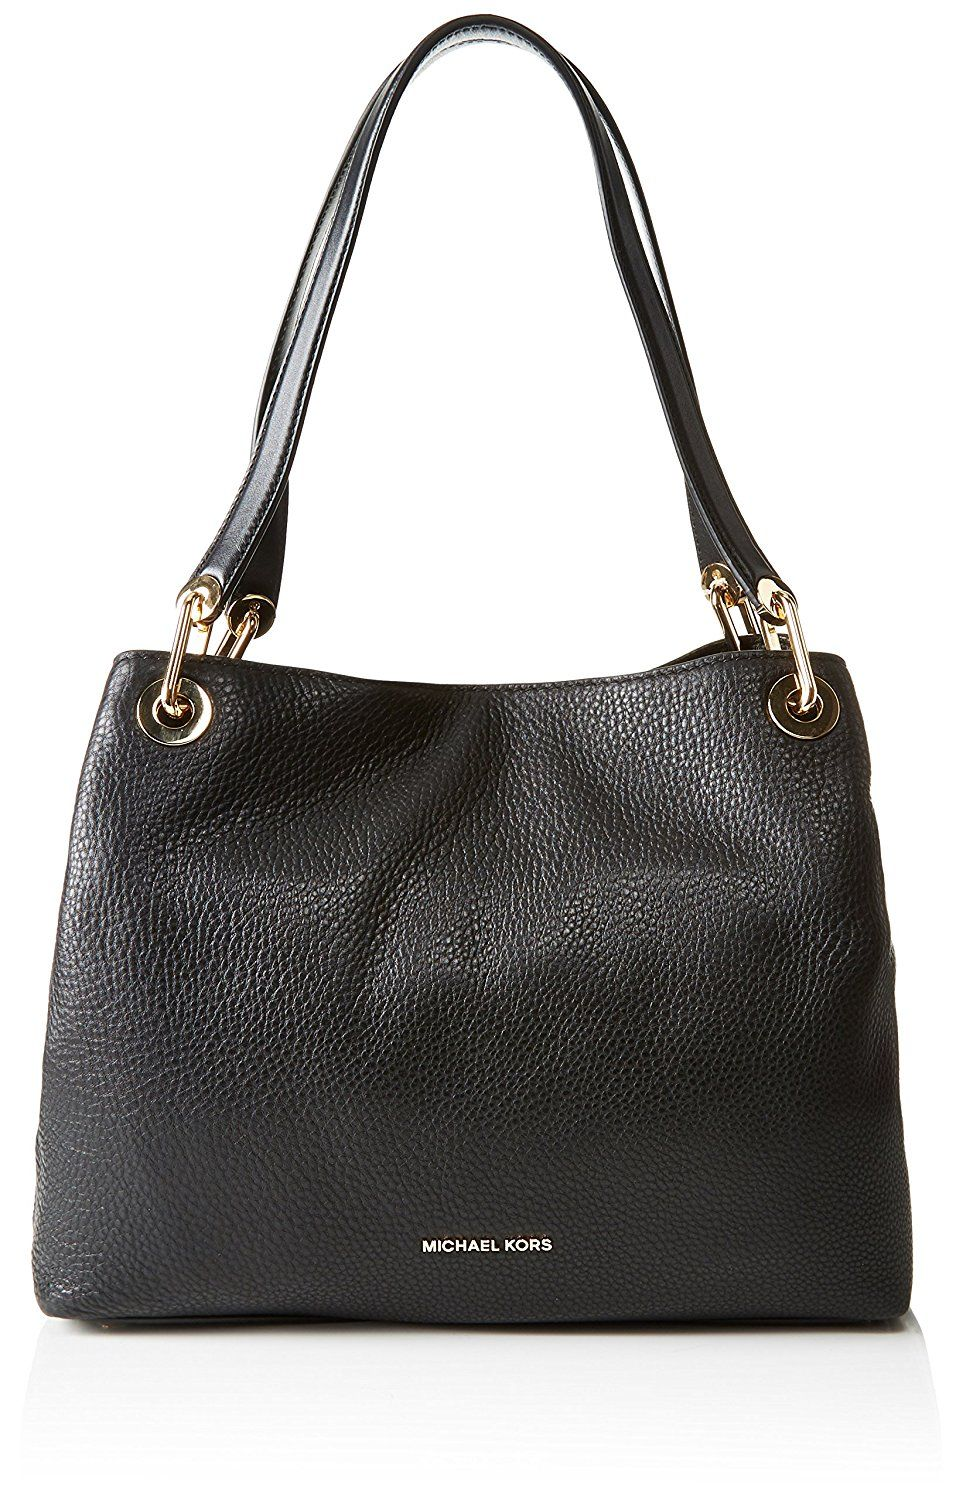 a34fde3c118126 Michael Michael Kors Raven Large Leather Shoulder Tote >>> Don't get left  behind, see this great product : Michael kors Handbags